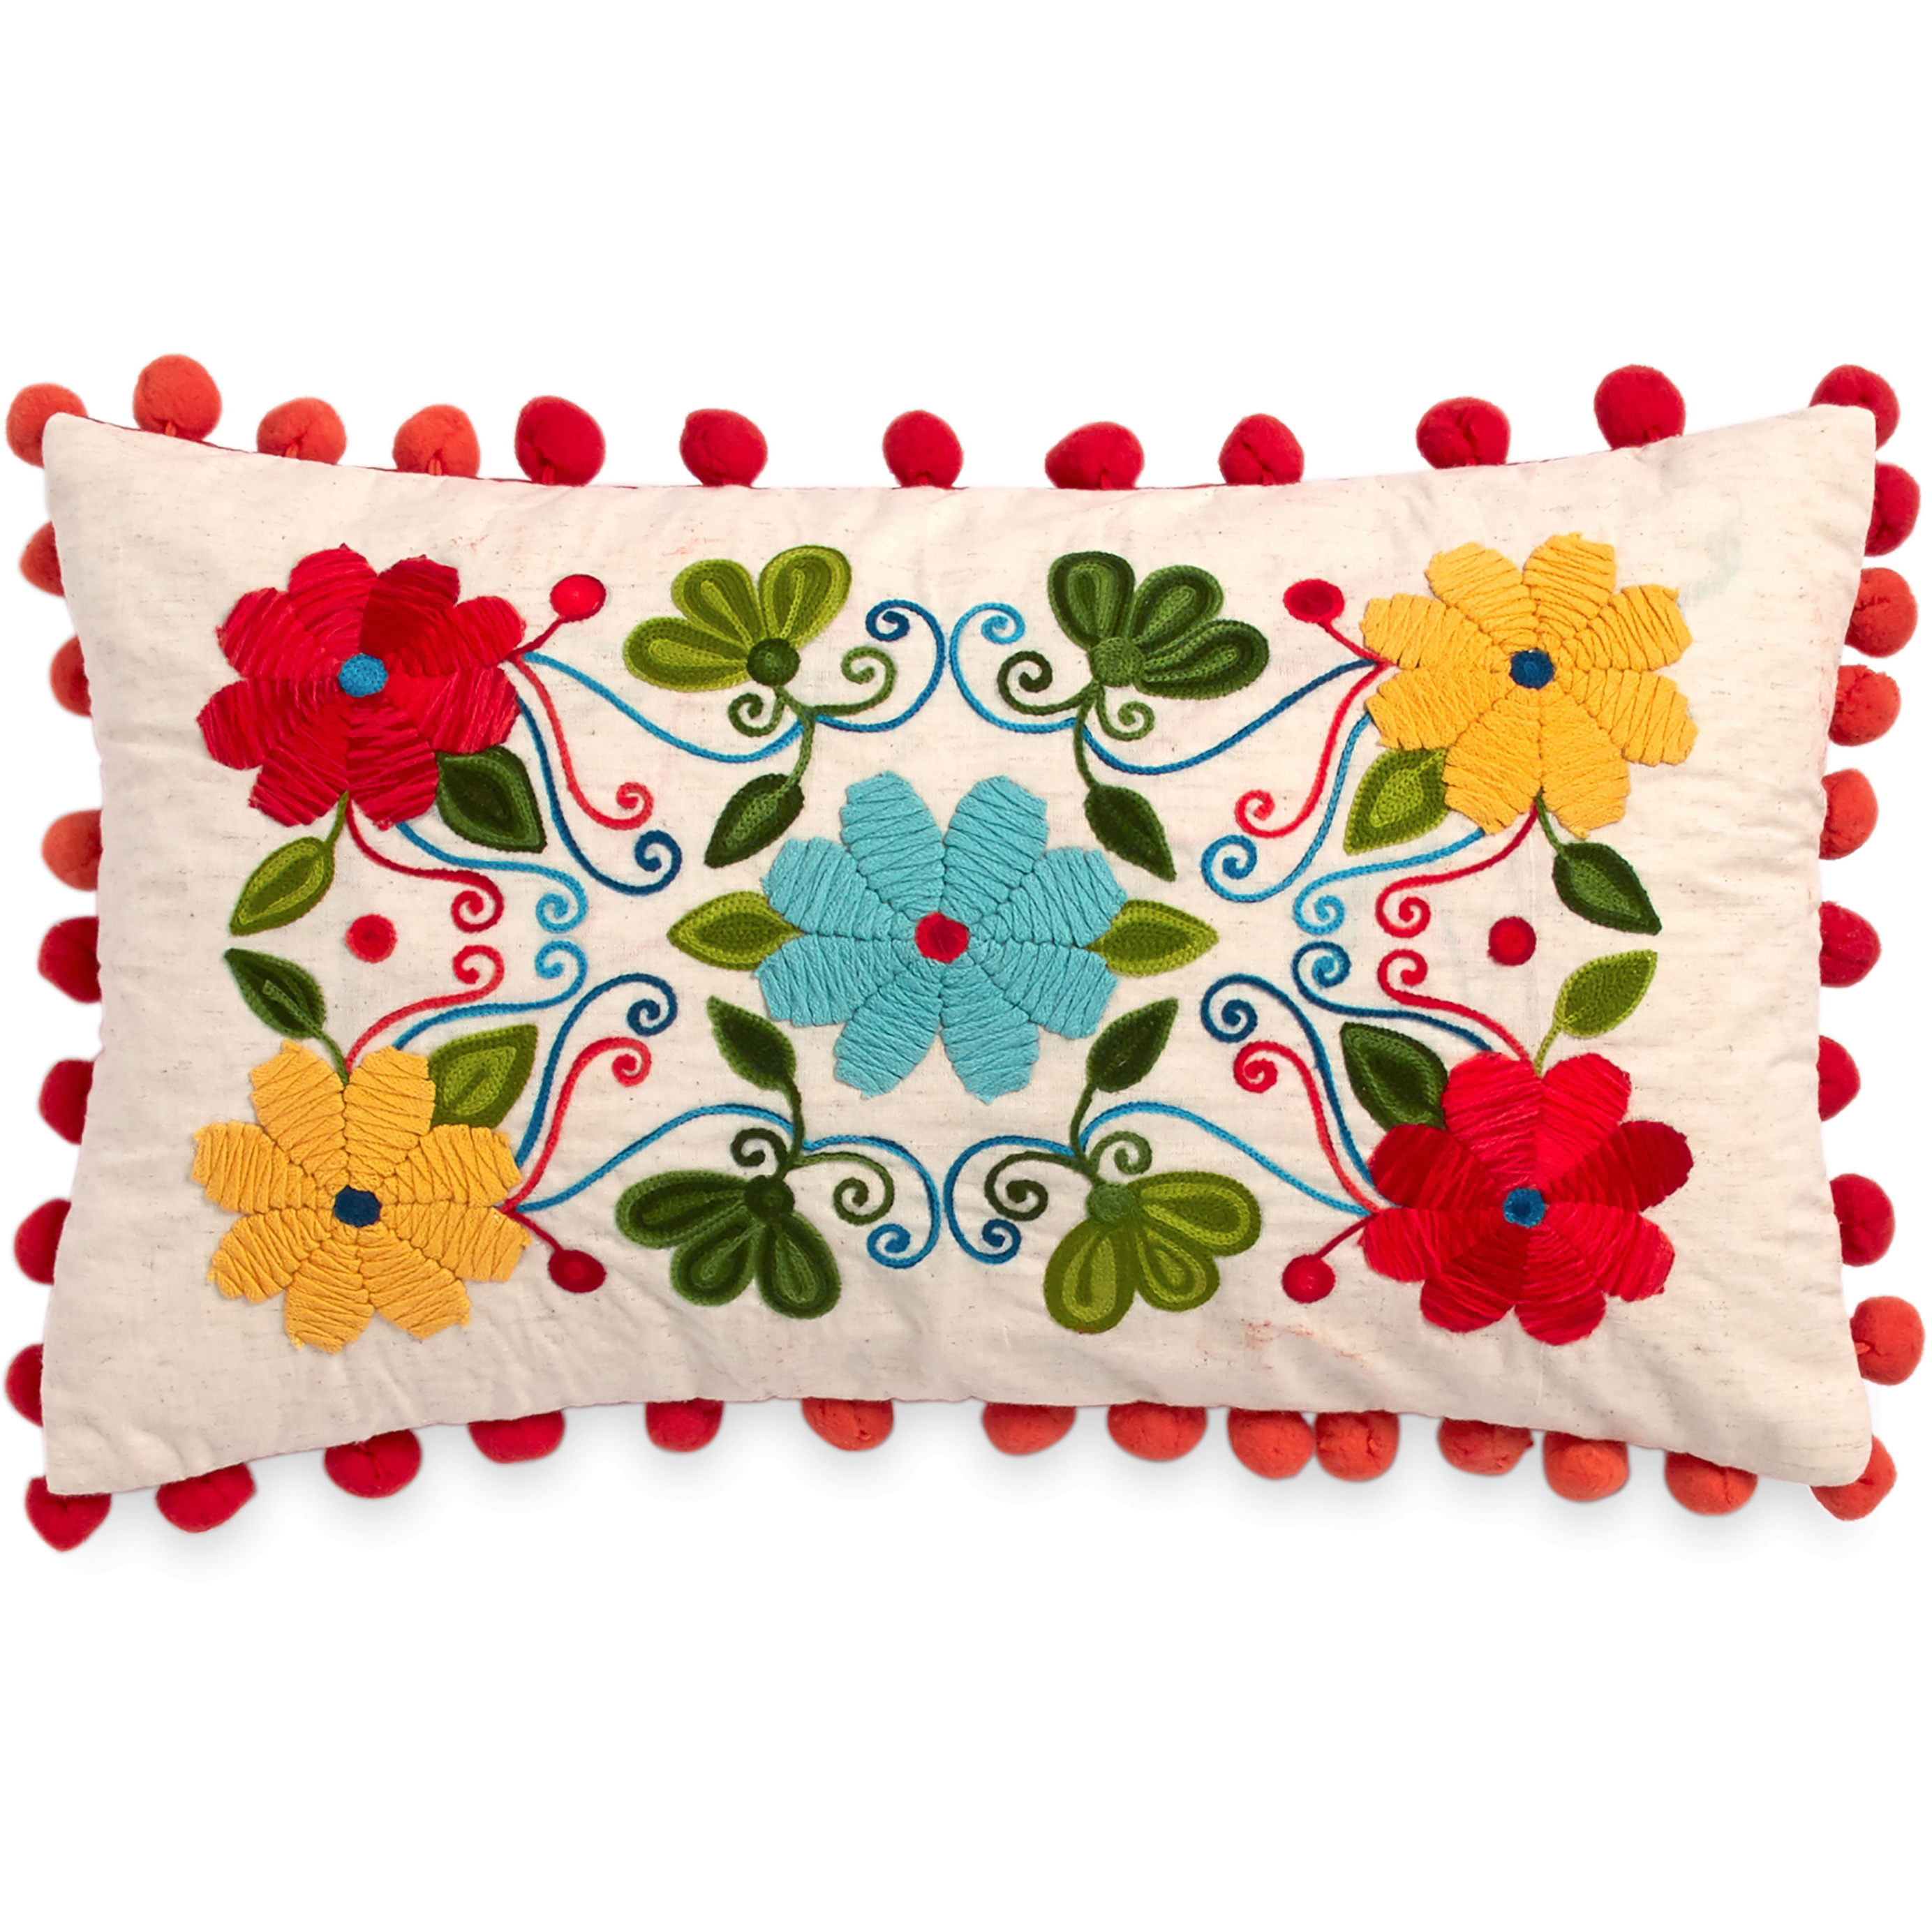 The Pioneer Woman Floral Embroidery 12x20 Decorative Pillow by CHF Industries, Inc.